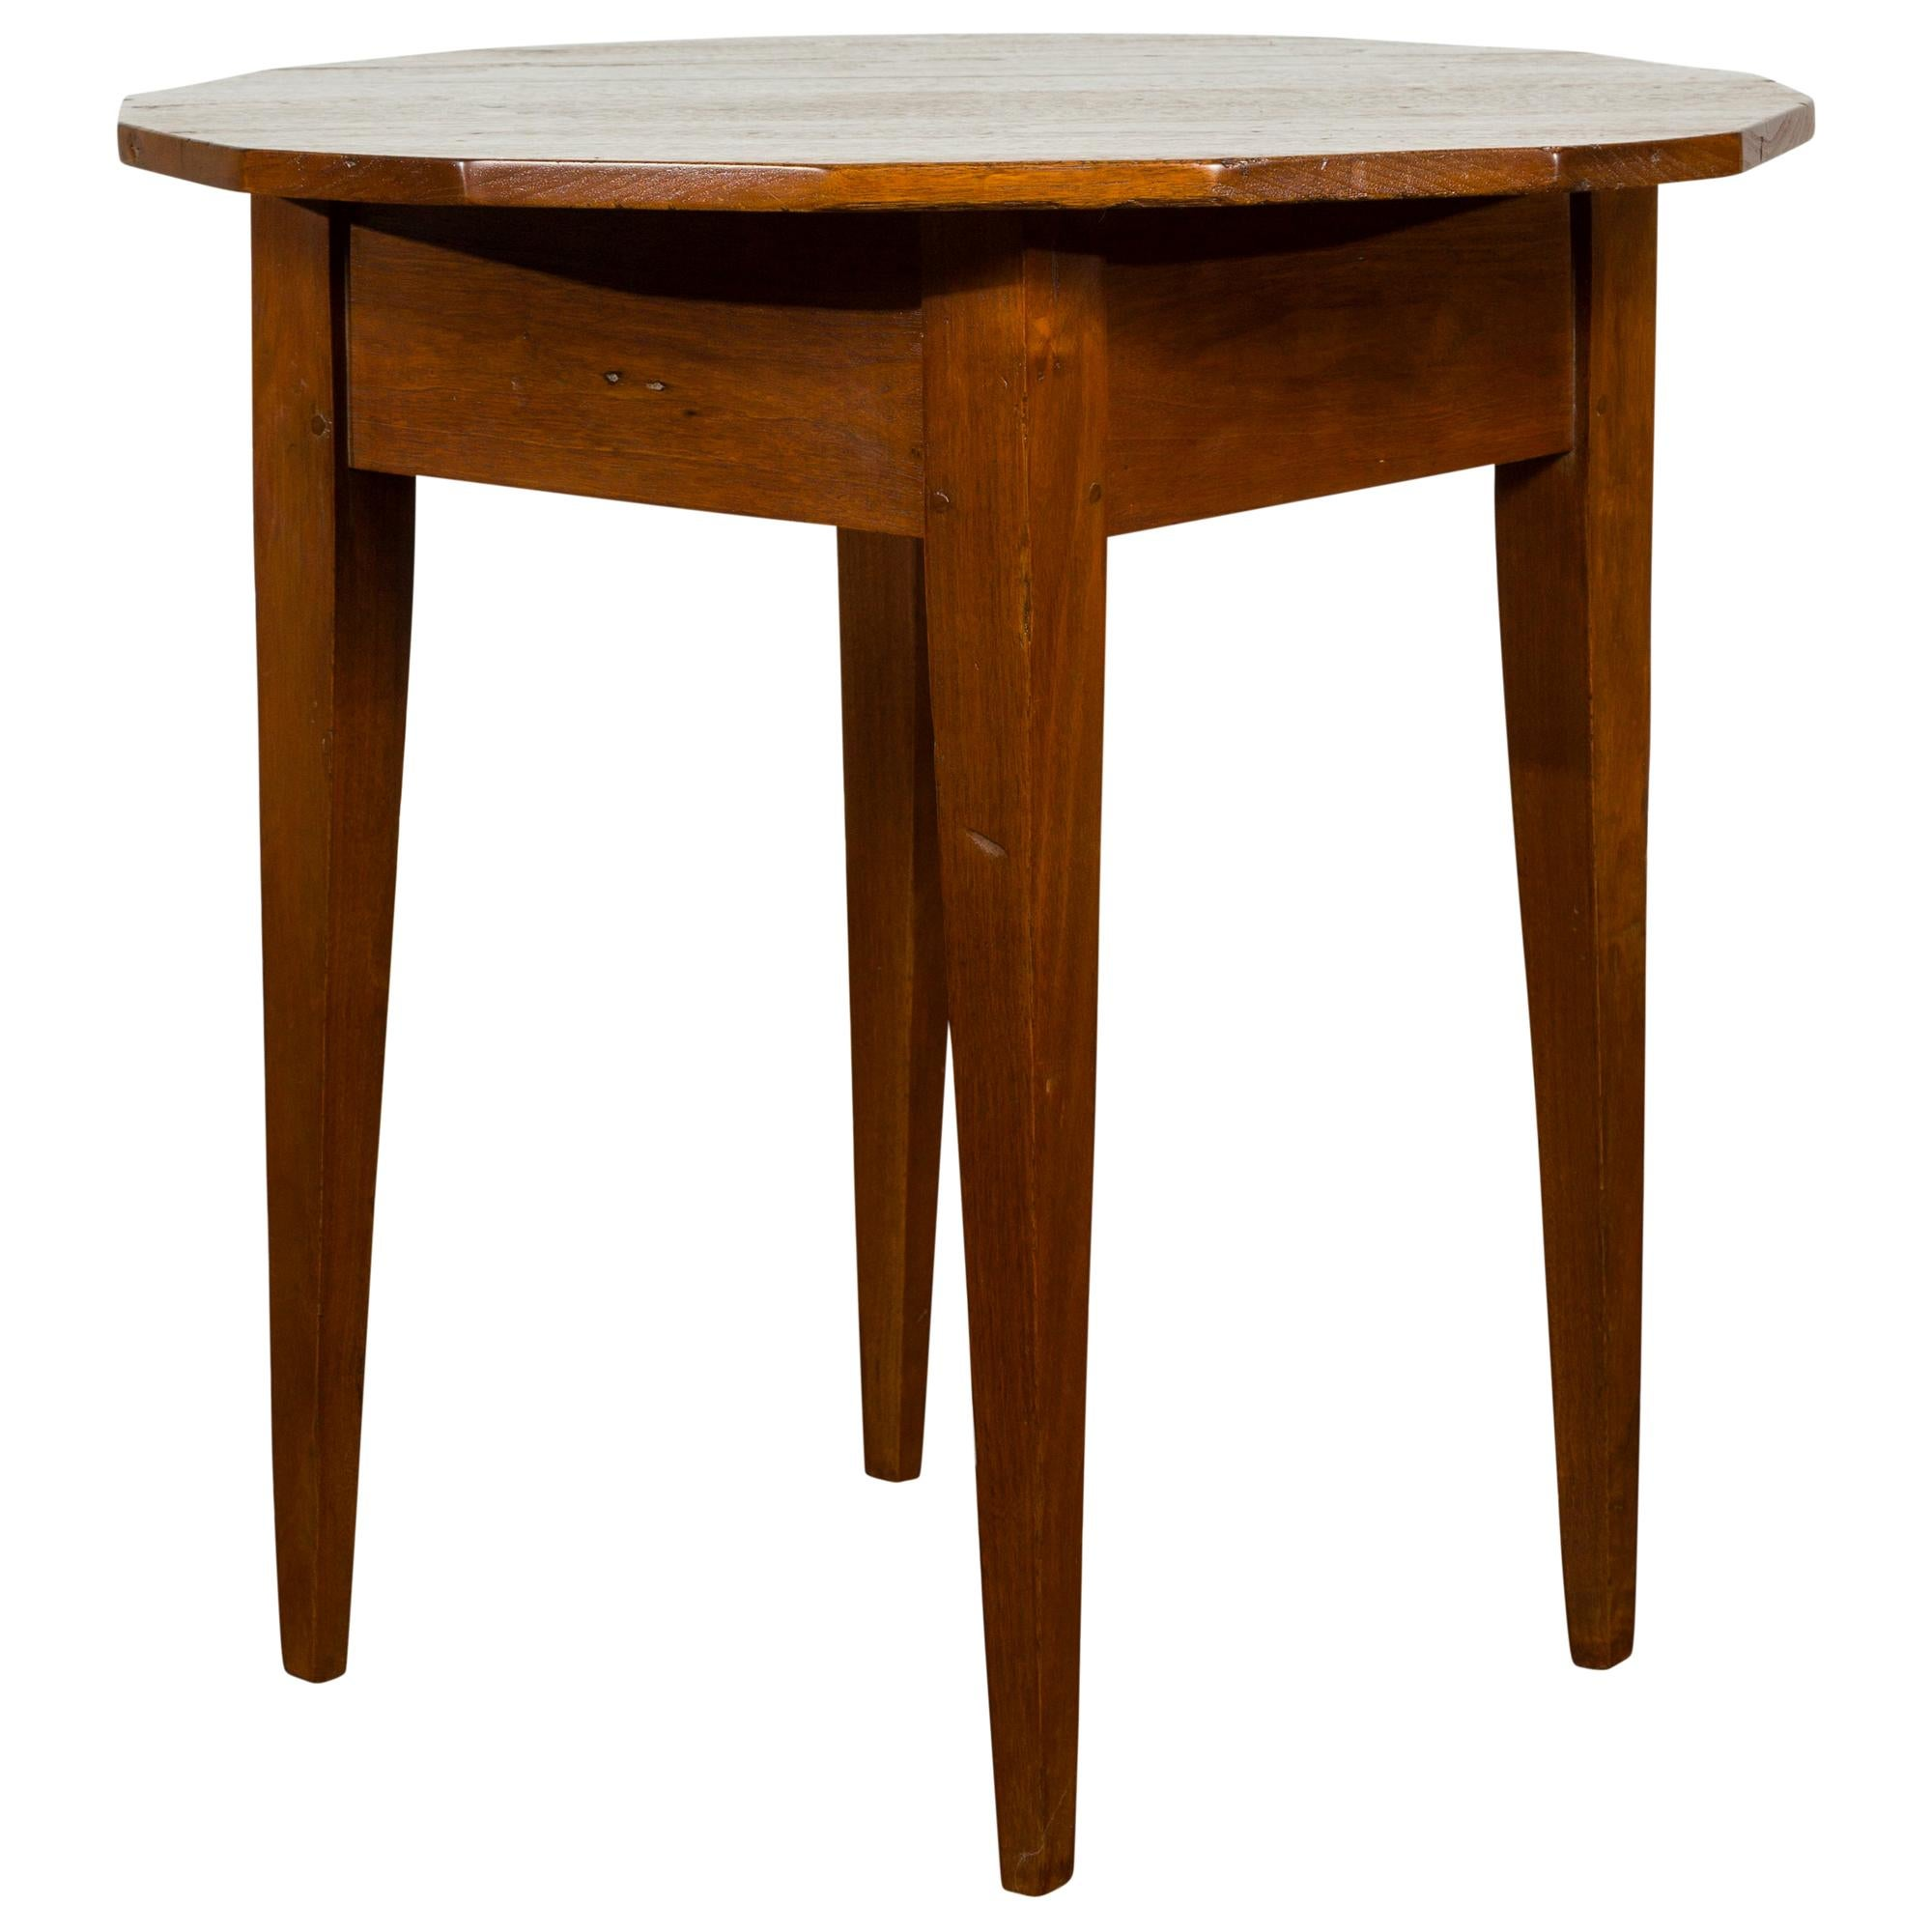 English 1860s Walnut Side Table with Polygonal Top and Tapered Legs